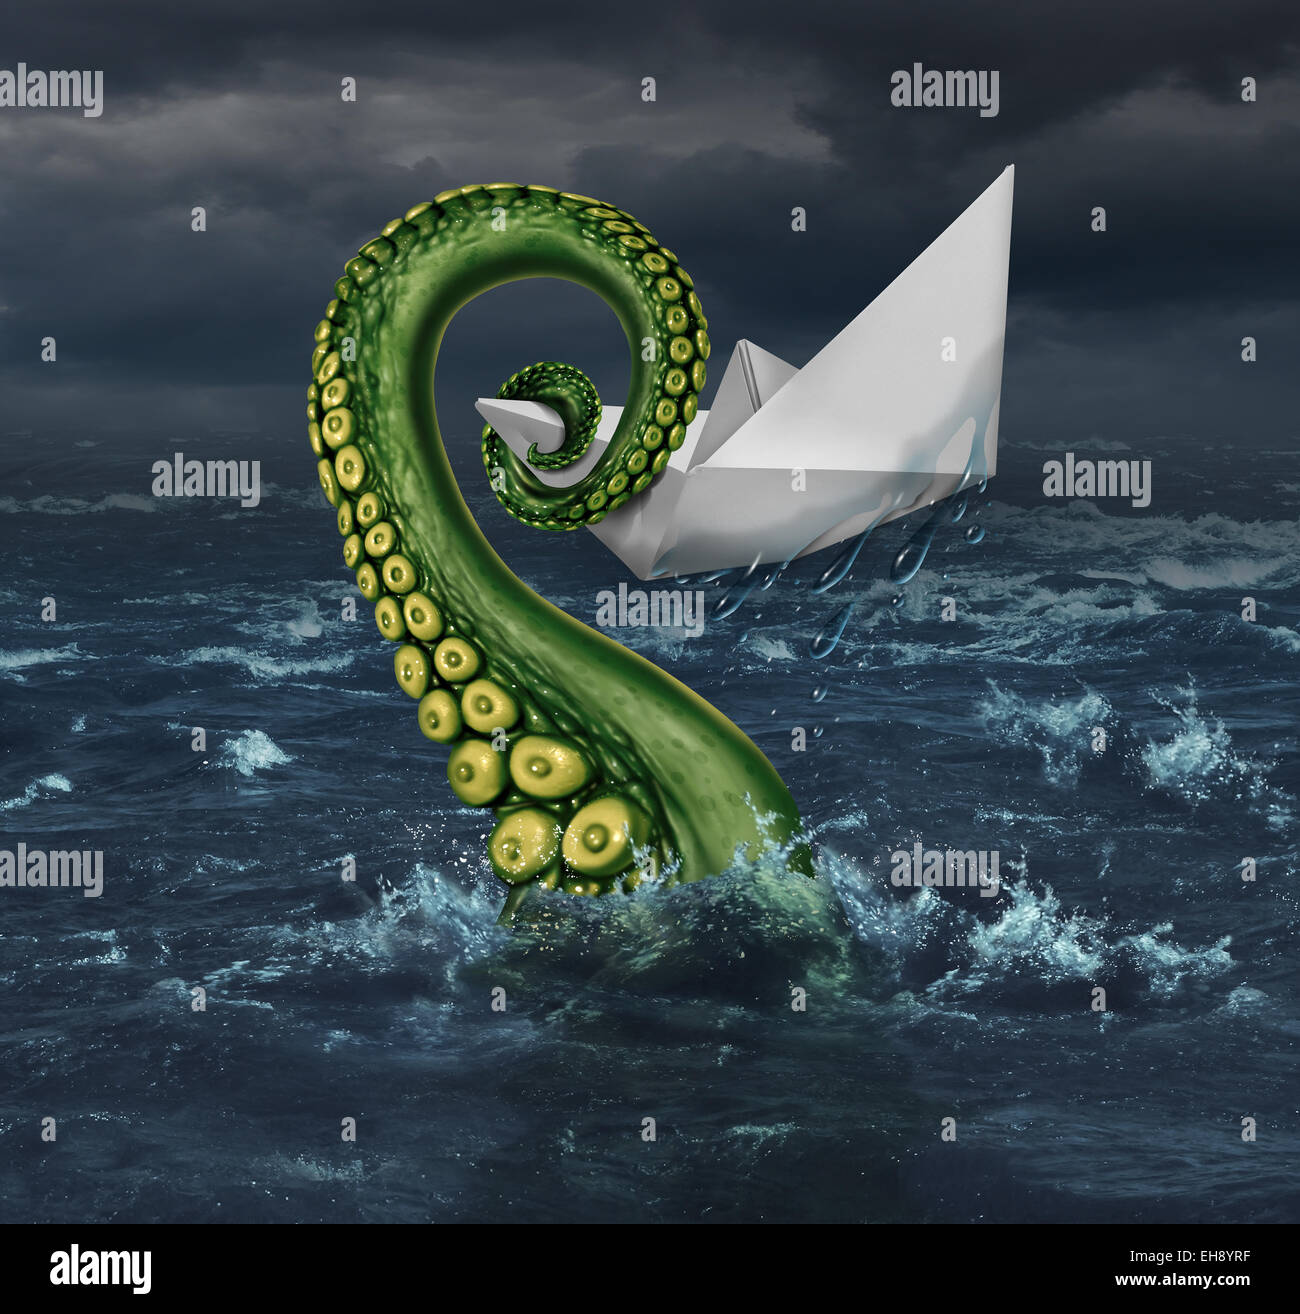 Business trouble and financial trap concept as an origami paper boat in a stormy sea being trapped by a monster - Stock Image